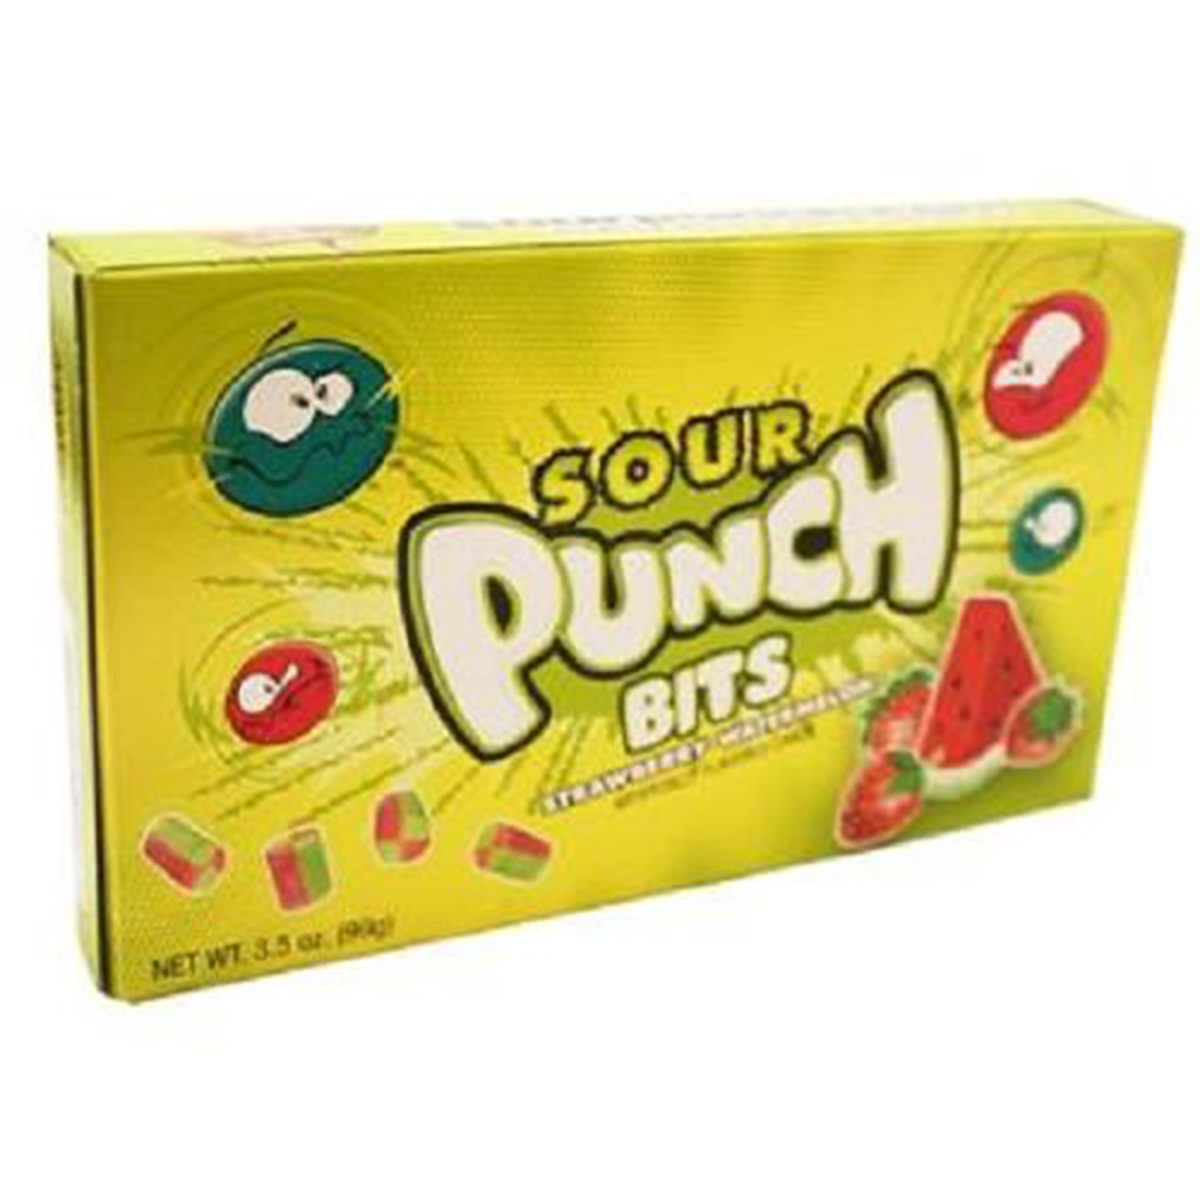 Product Of Sour Punch, Strawberry-Watermelon, Count 1 (3.5 oz) - Sugar Candy / Grab Varieties & Flavors